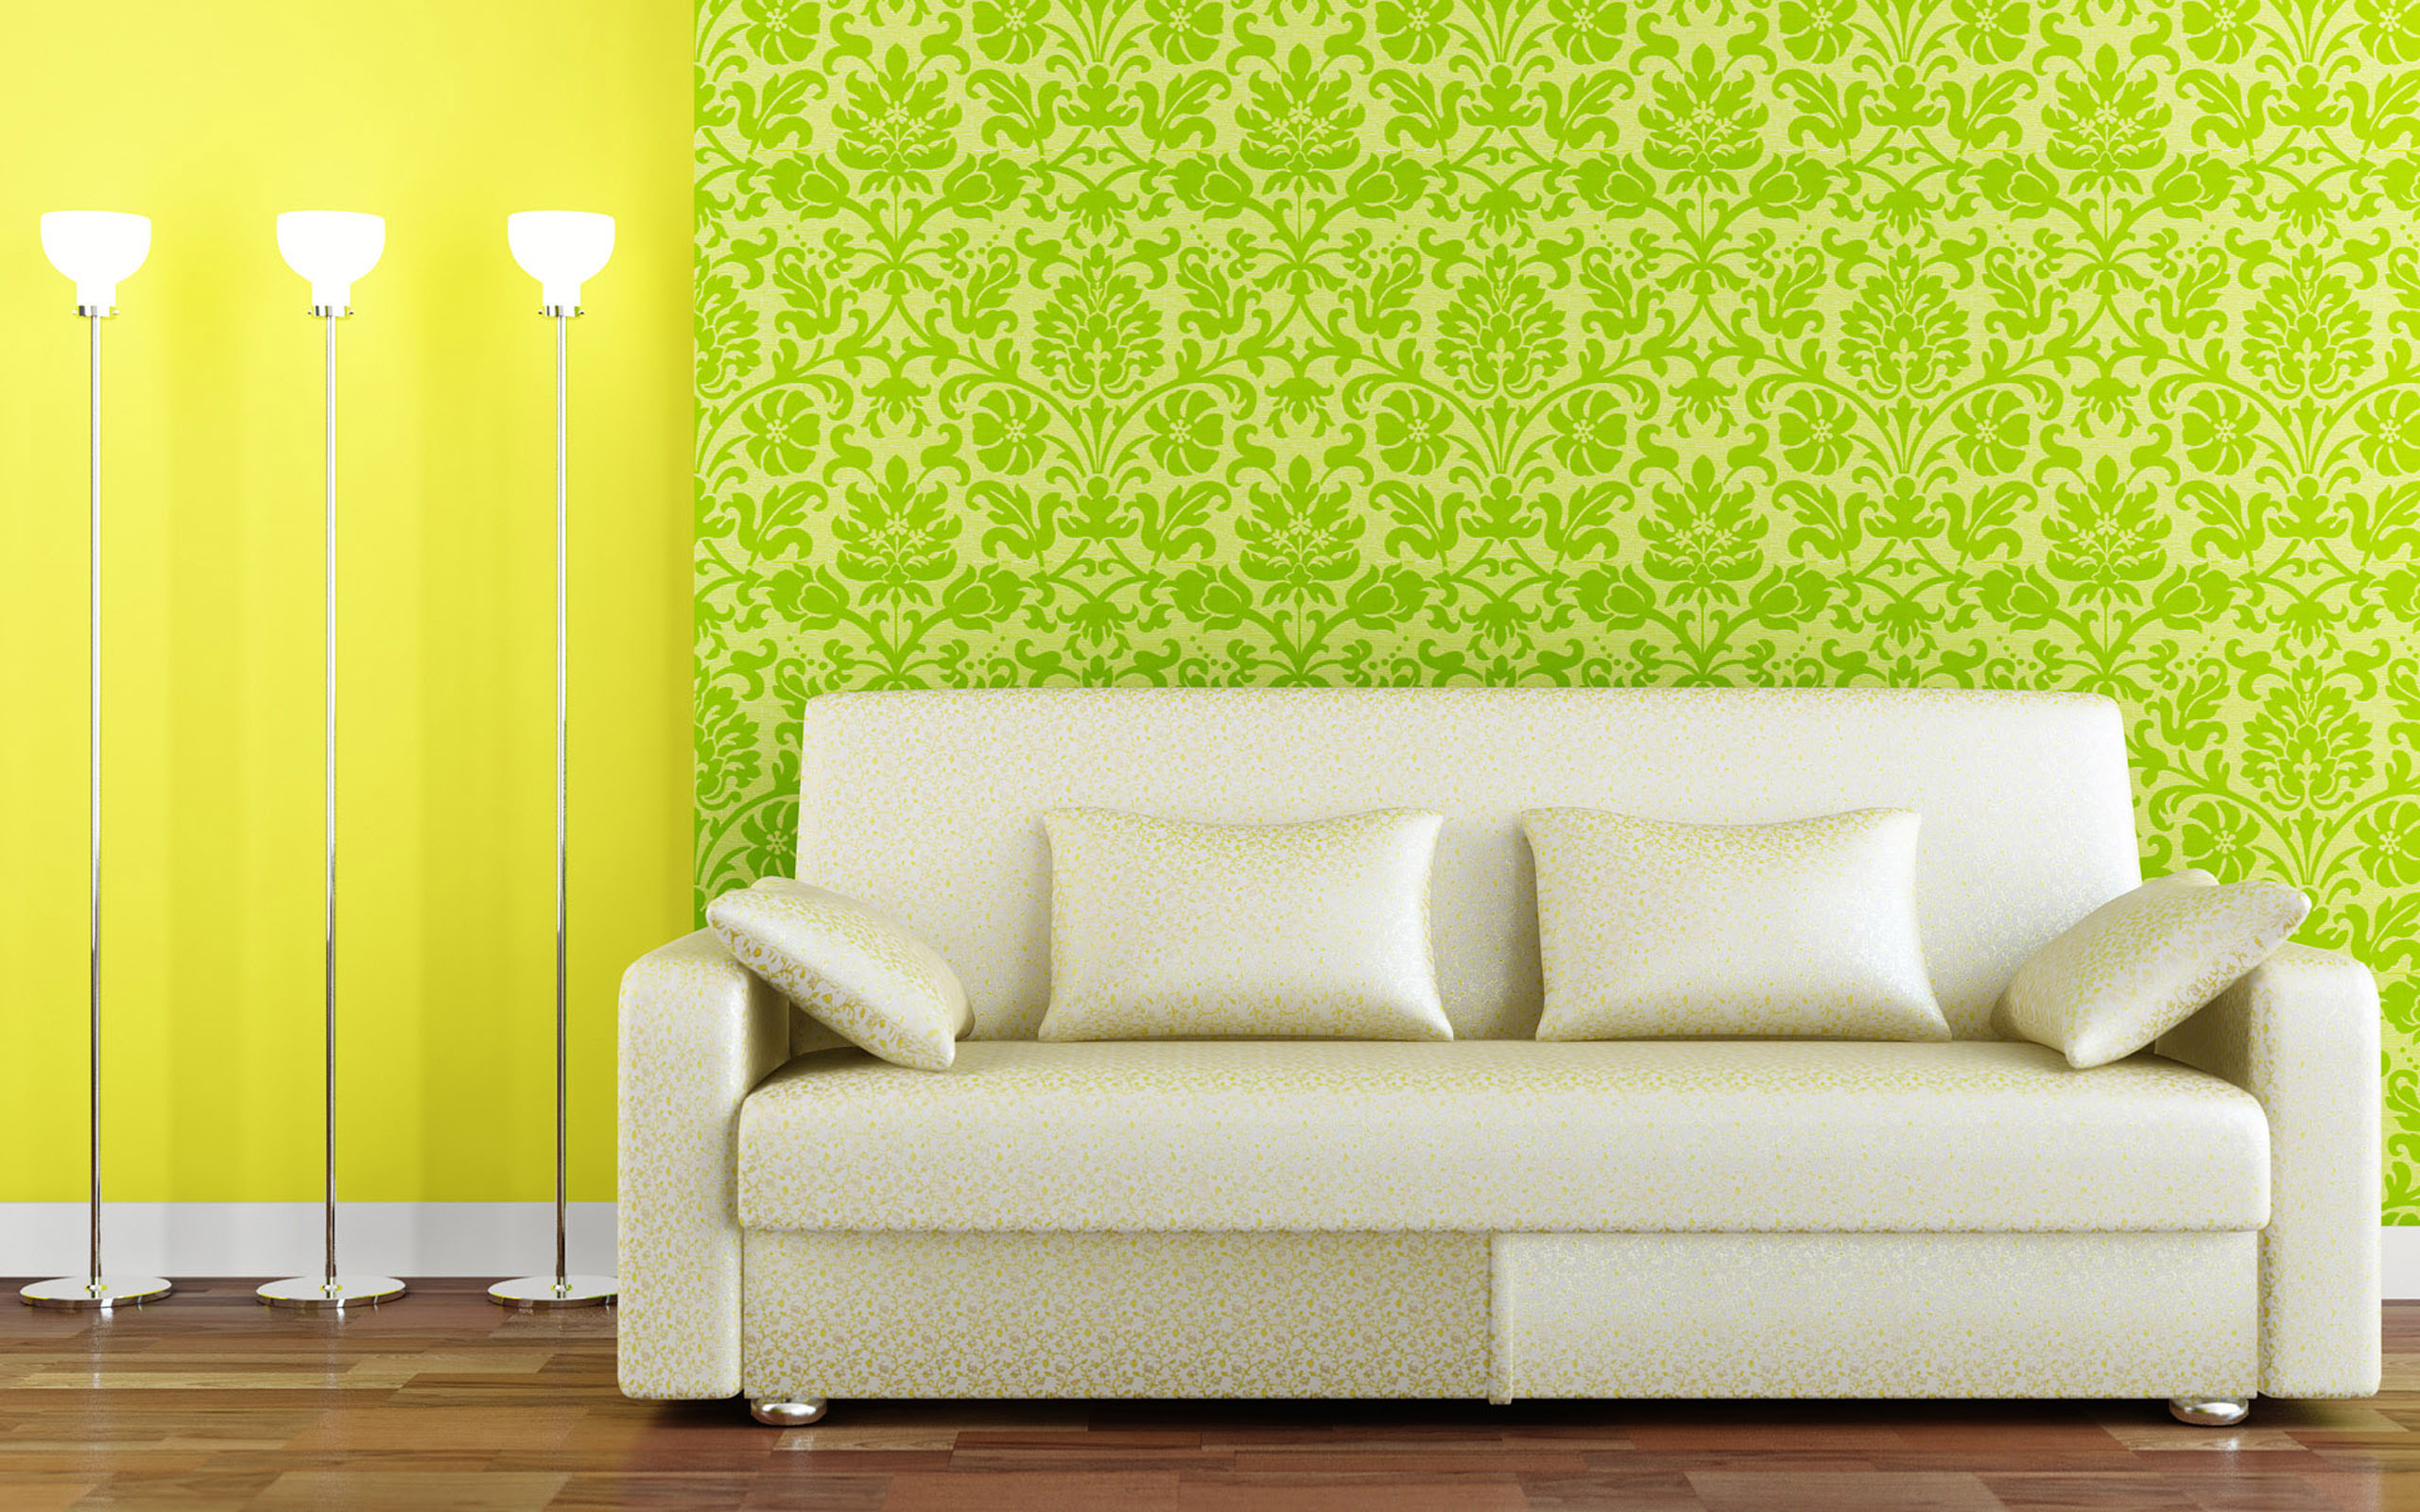 White sofa on green background oboj wallpapers and images ...